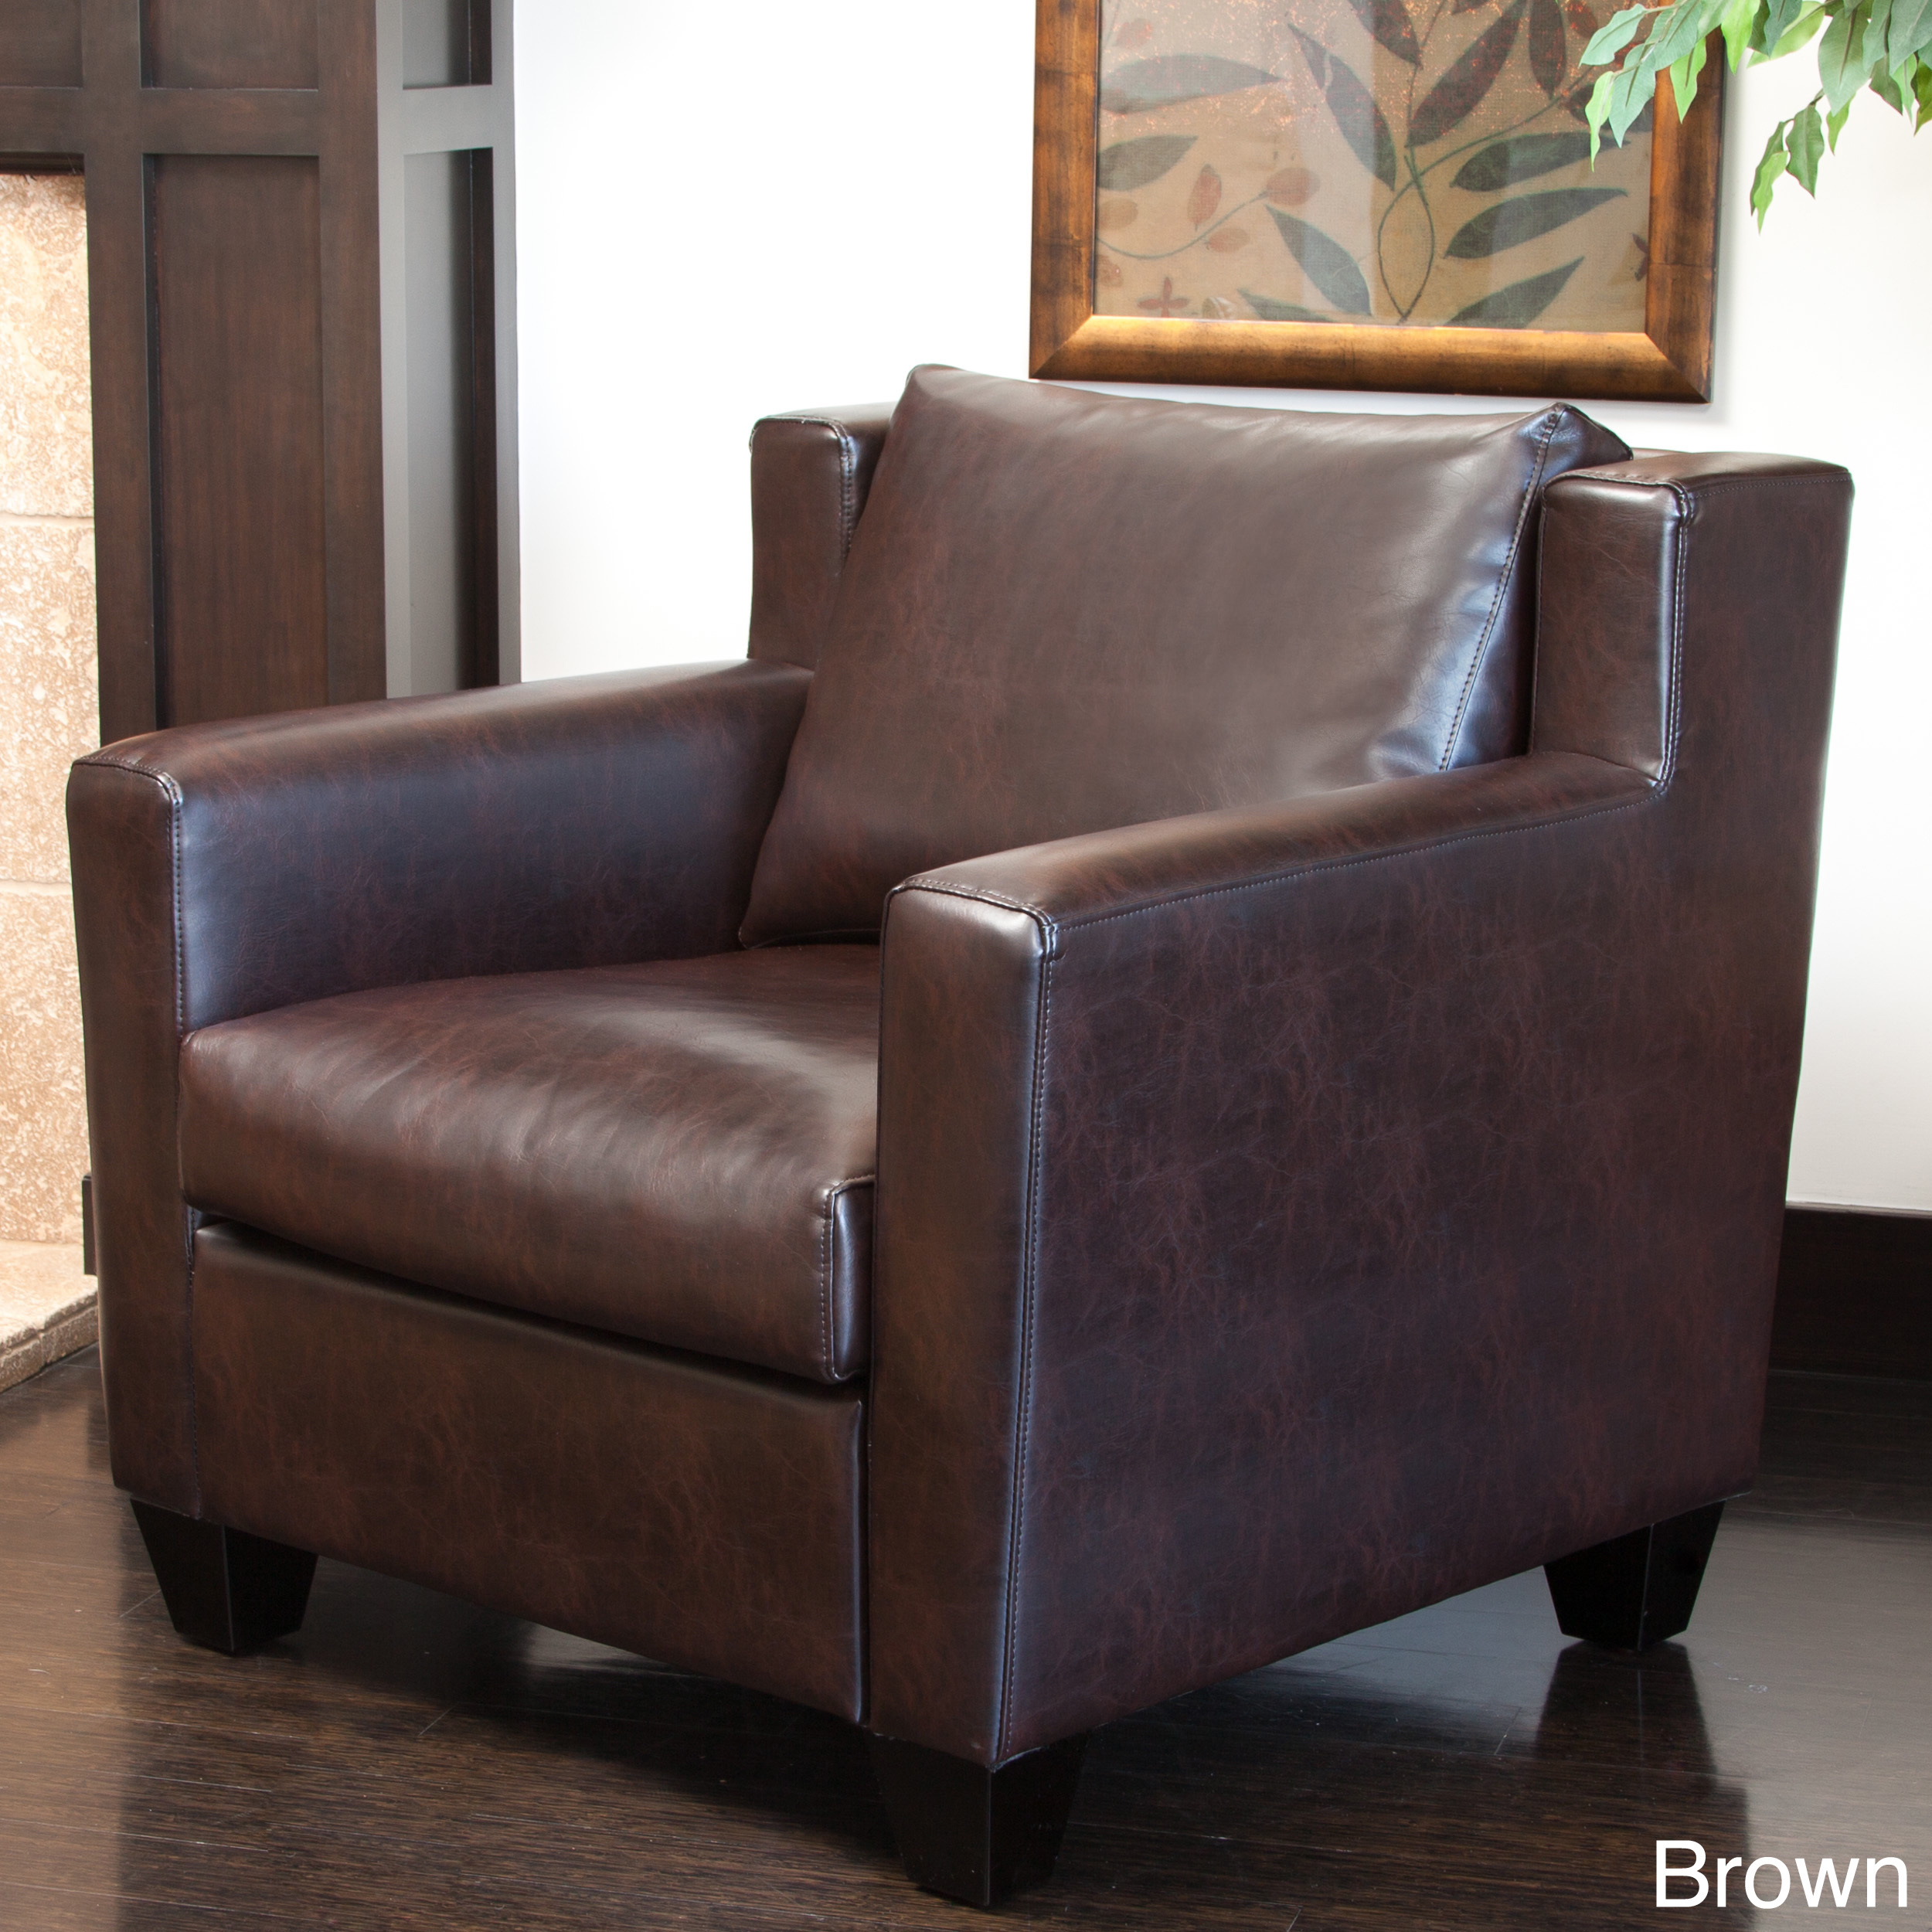 Superieur Christopher Knight Home Quaker Leather Club Chair Quaker Brown Leather Club  Chair